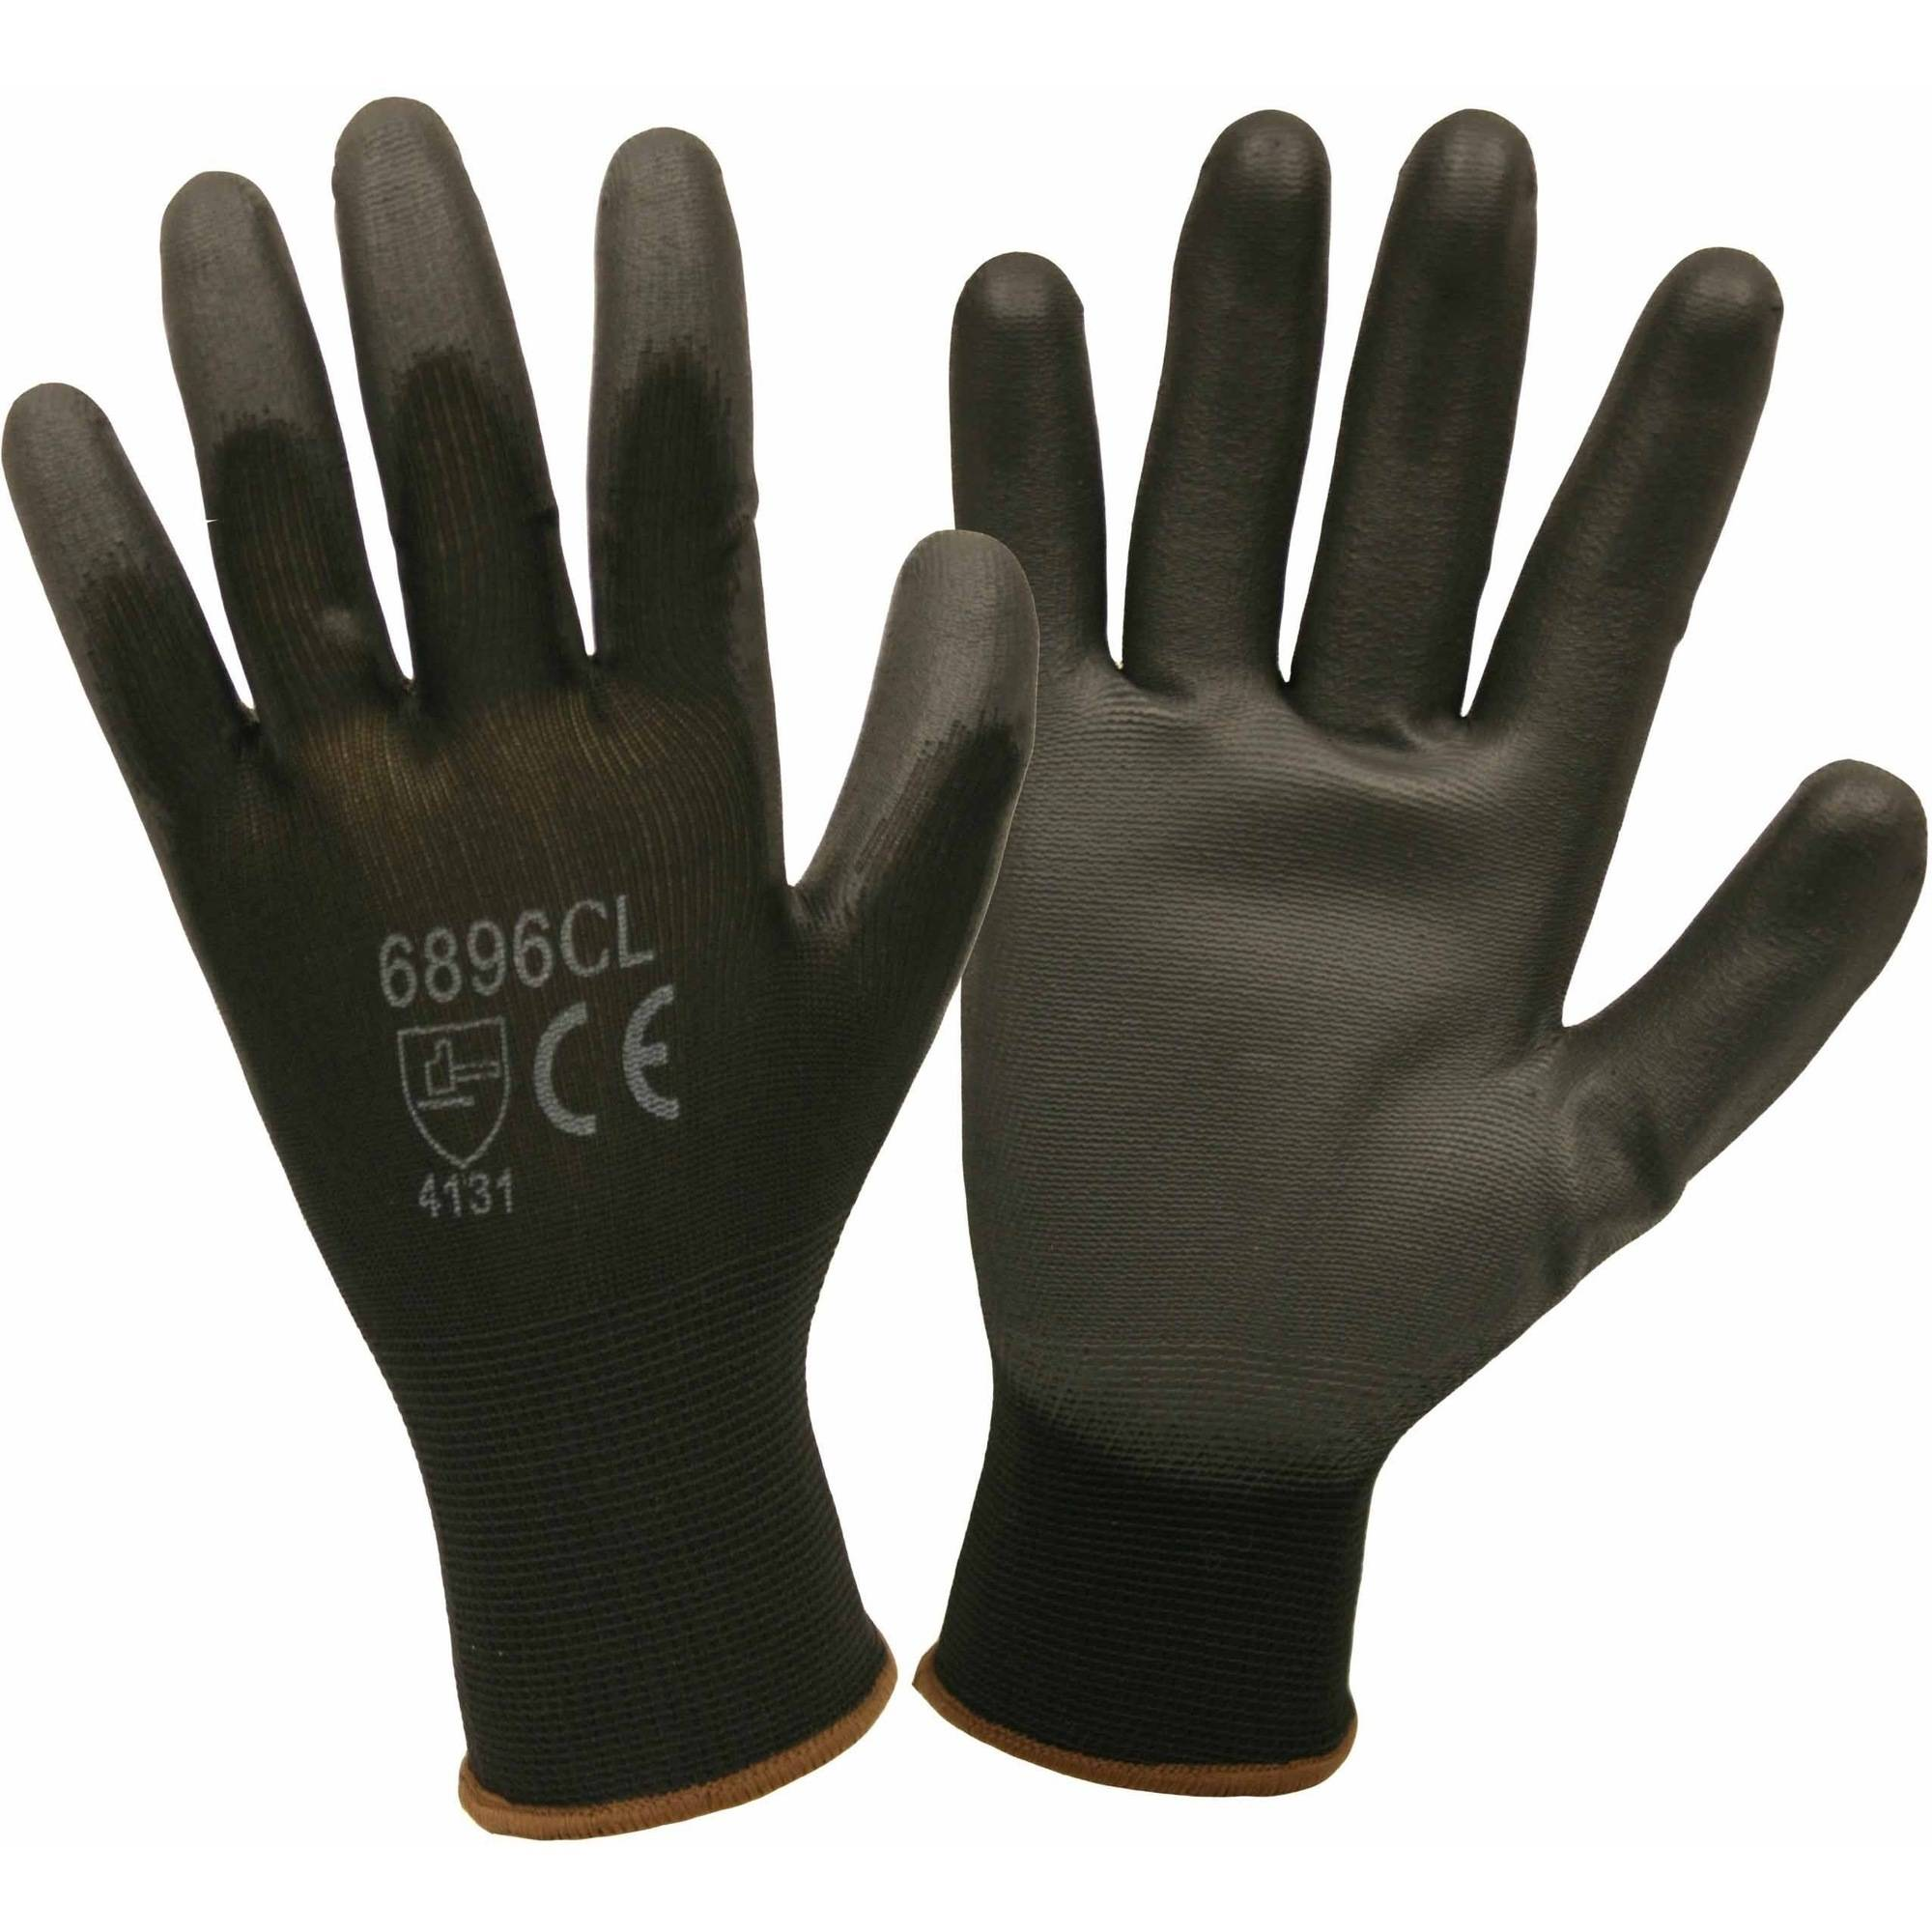 Black Nylon Work Gloves with a Polyurethane Coating, Pack of 12 Pairs by Cordova Safety Products